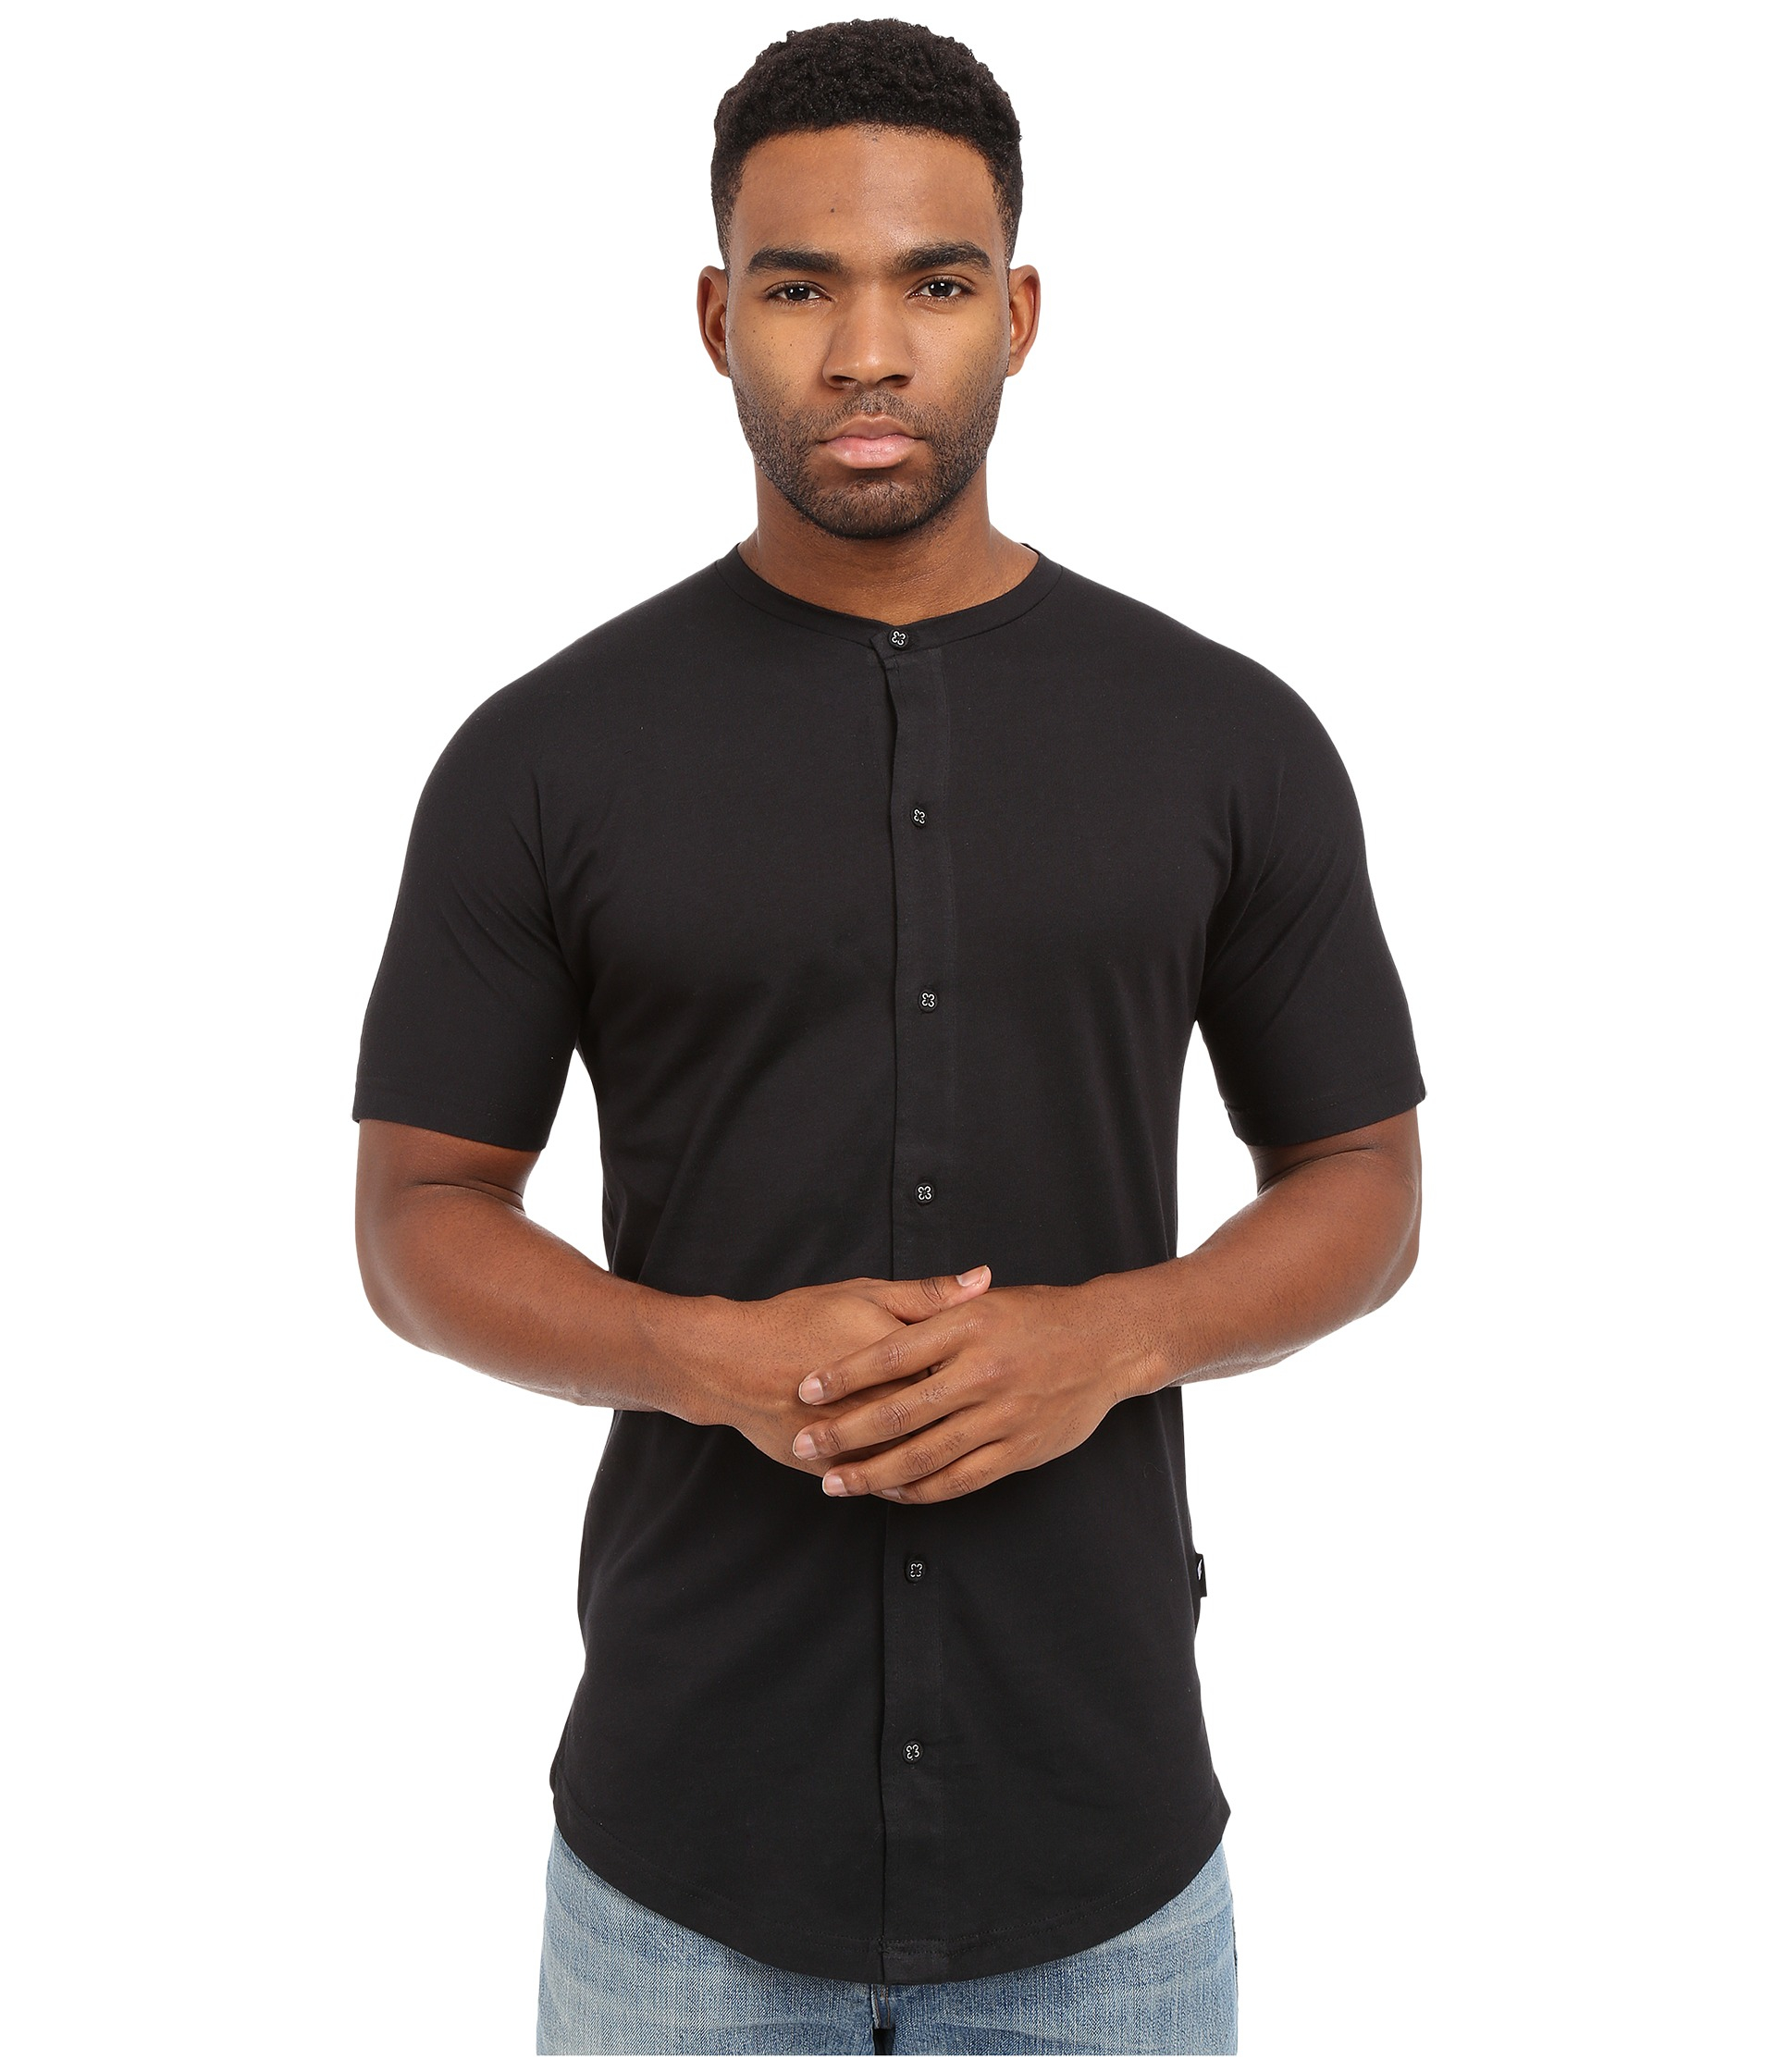 Timberland Malachy - Cotton Knit Seamless Short Sleeve Button Up ...